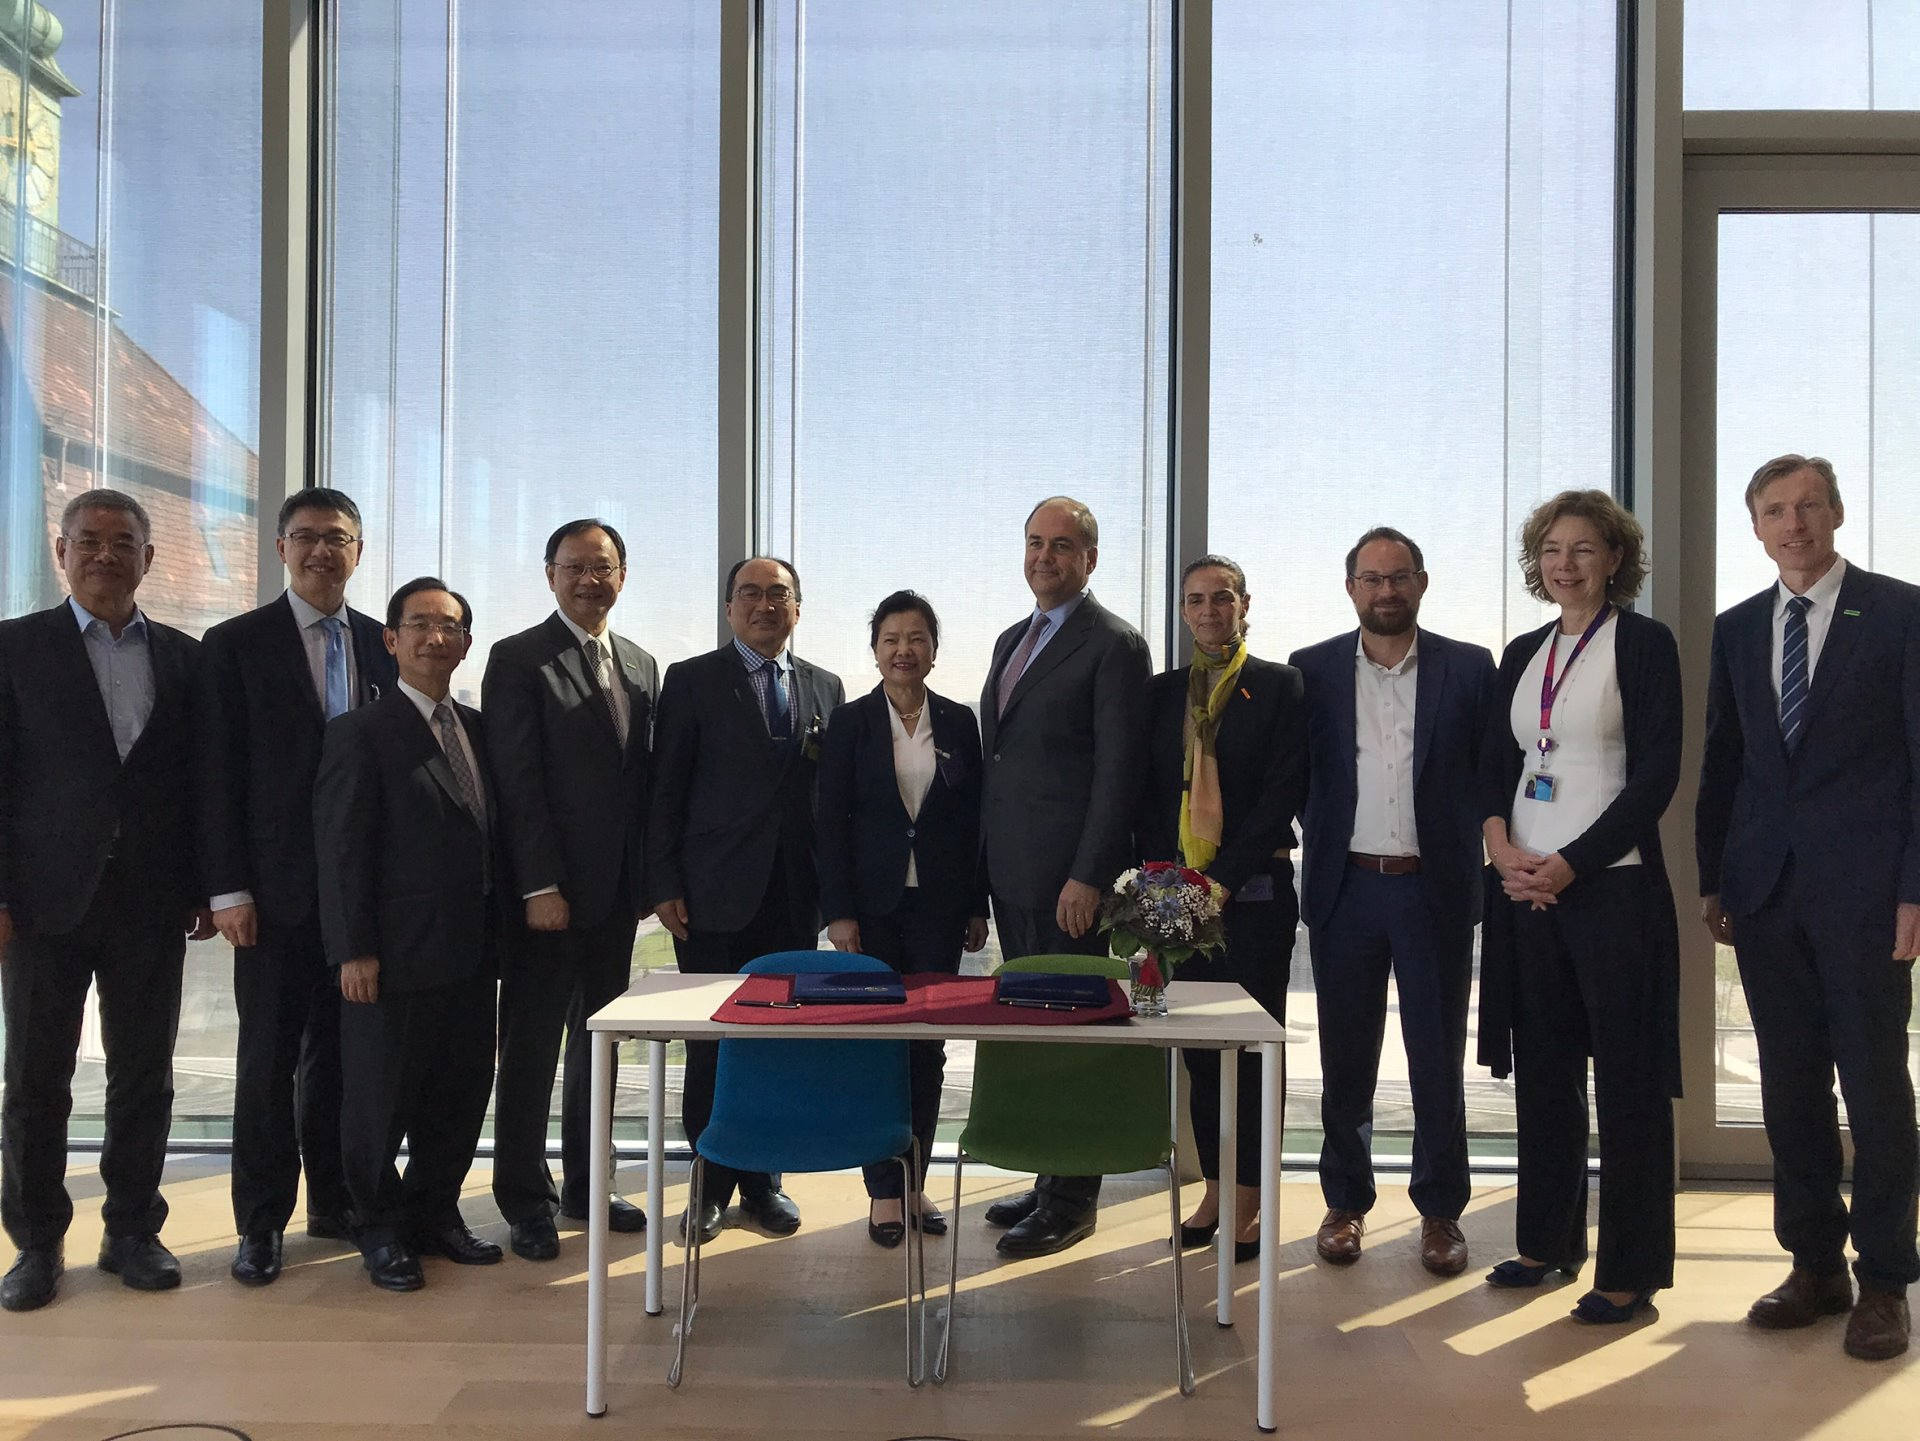 2019 Europe Investment Promotion Delegation photo-2